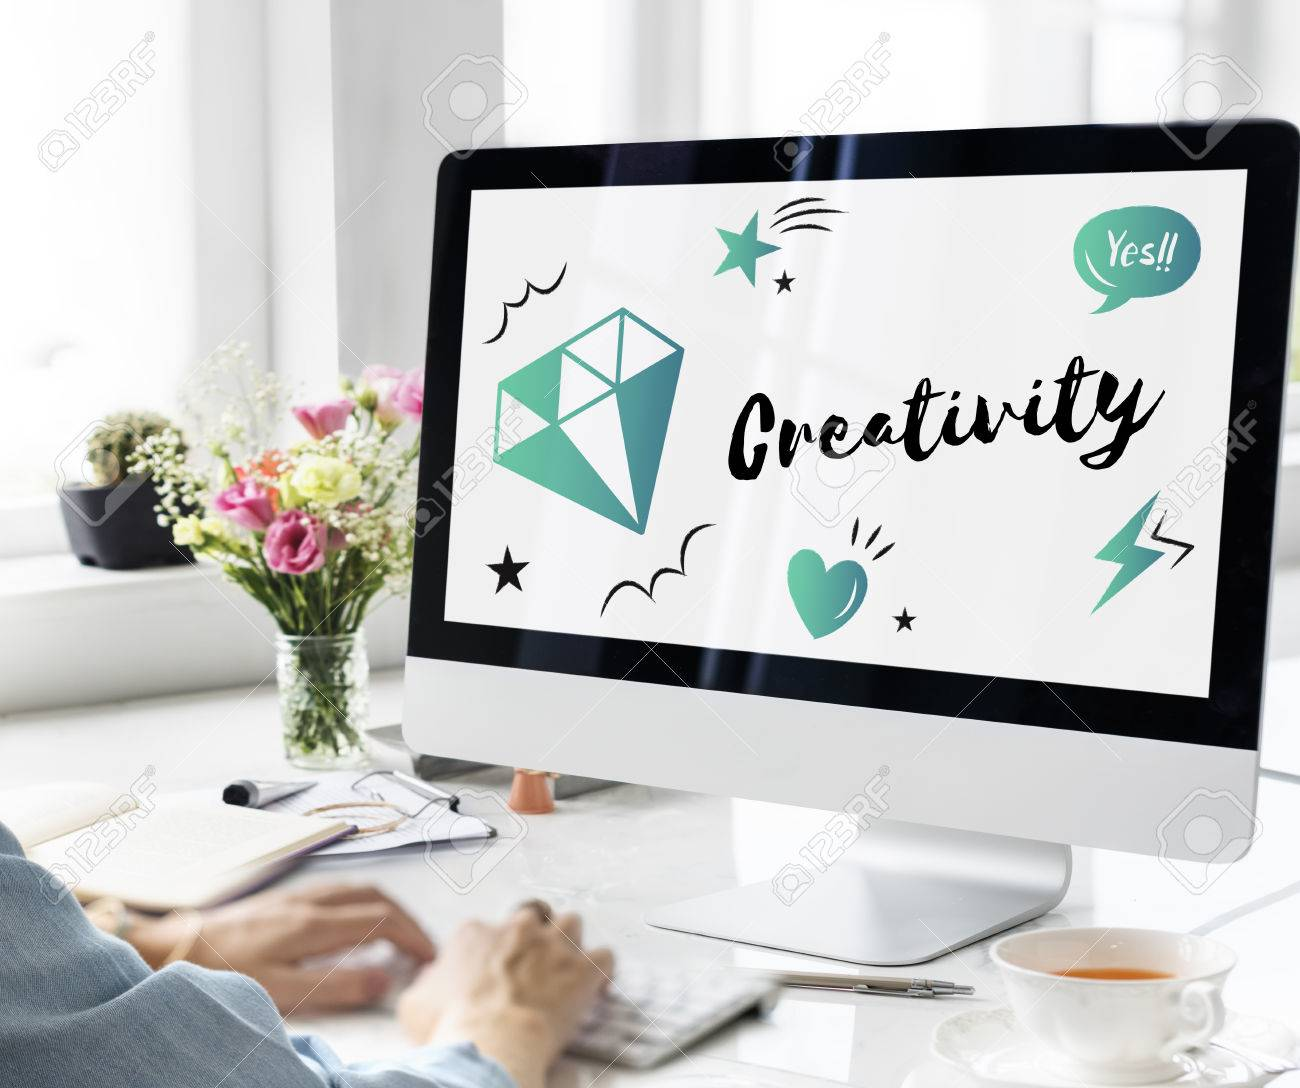 Fresh Ideas Design Creativity Concept Stock Photo - 78254452